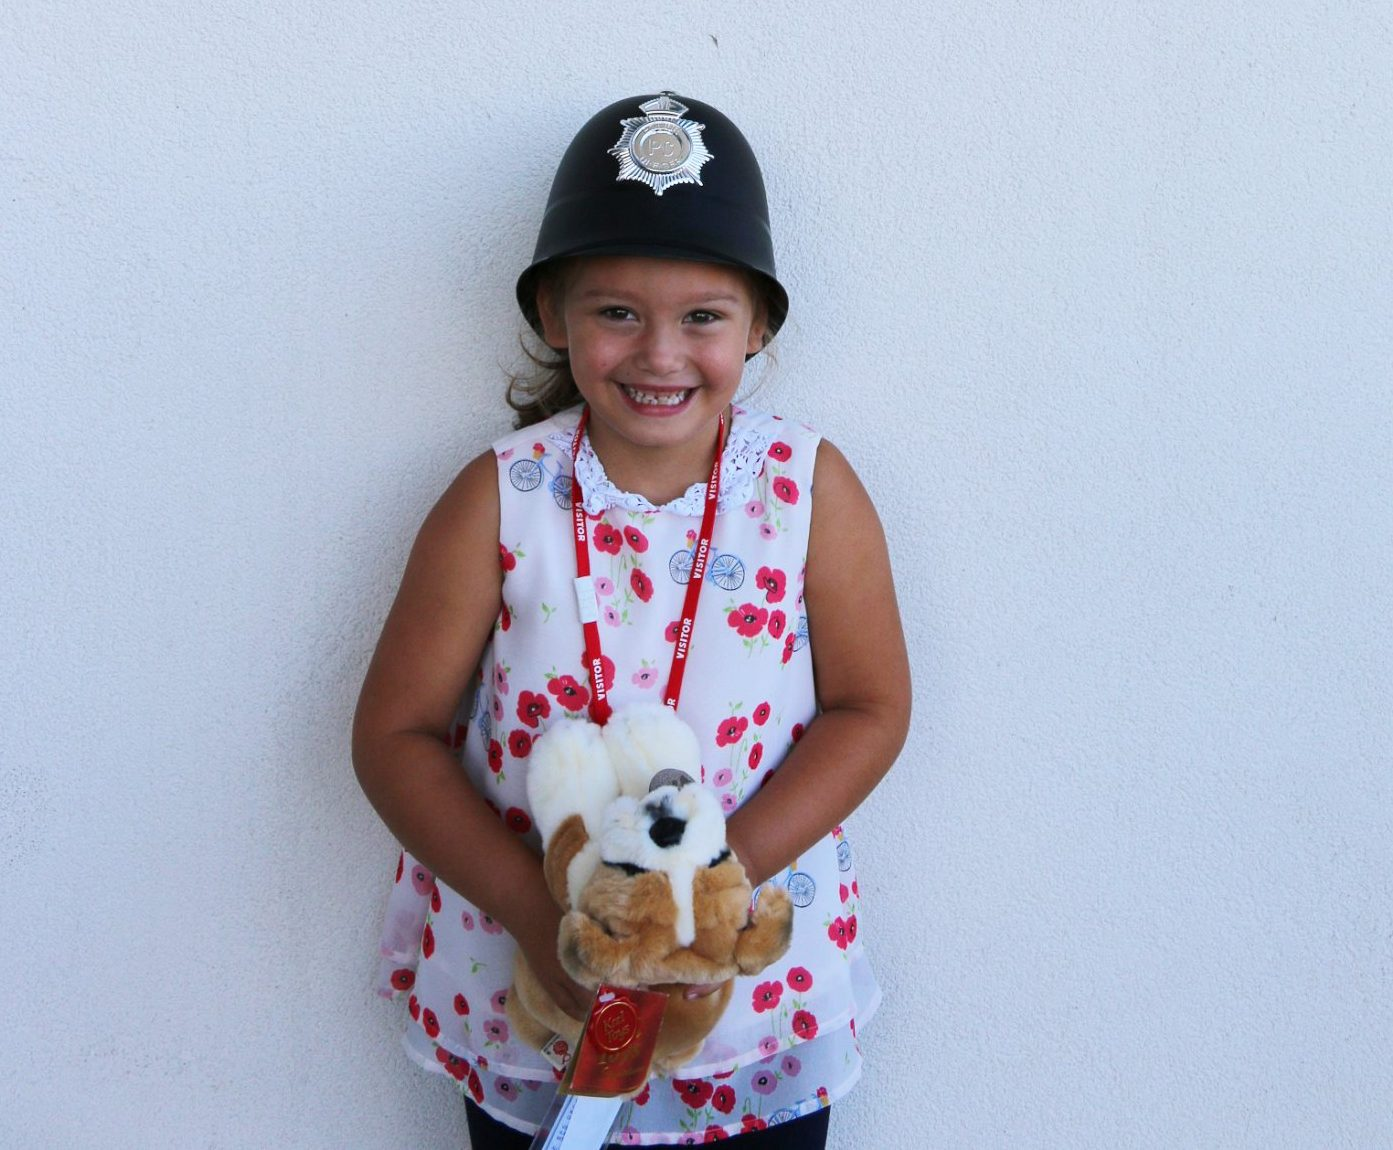 Ruby Walters, 6 who saved the life of her mum by dialling 999 when she collapsed at home. See NTI copy NTI999: A quick-thinking six-year-old girl has been given a bravery award after she saved the life of her mum by dialling 999 when she collapsed at home. Little Ruby Walters managed to stay calm when she found mum Faye unconscious on the floor after she became unwell on June 7. Incredibly, the youngster used her mum???s thumbprint to unlock her mobile so she could make the emergency call.